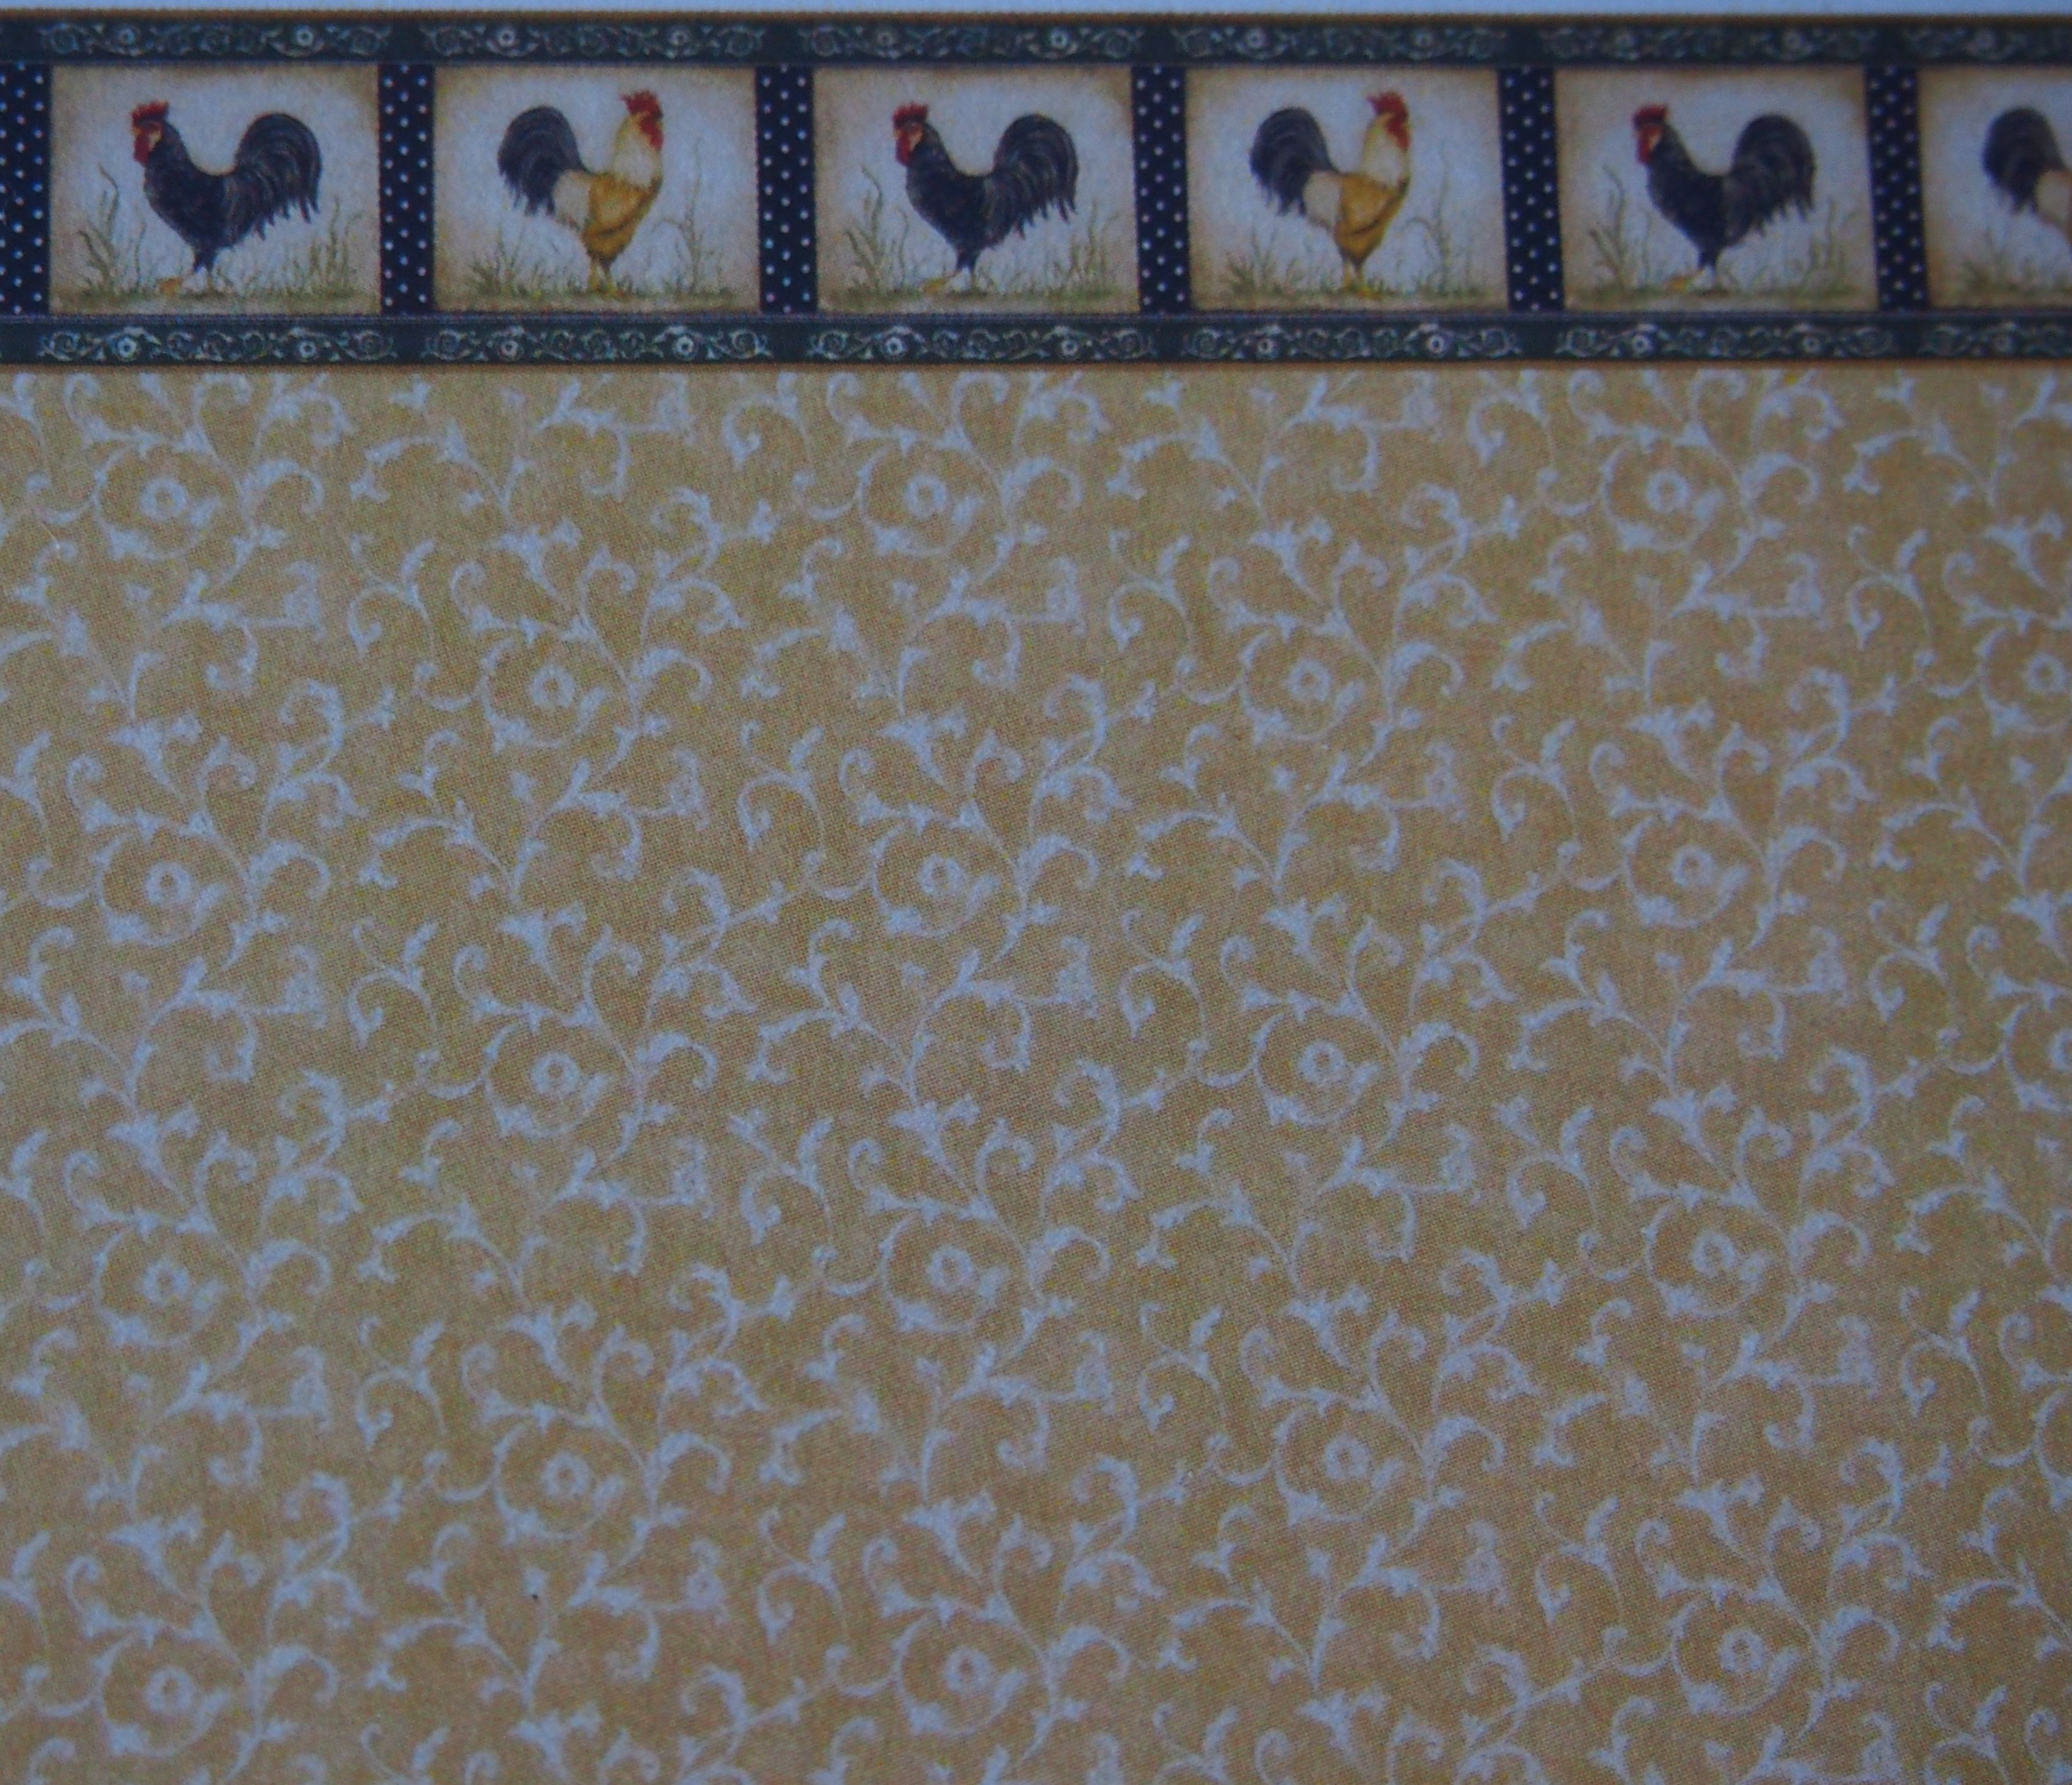 half inch dollhouse wallpaper with rooster border [590a] - $3.00